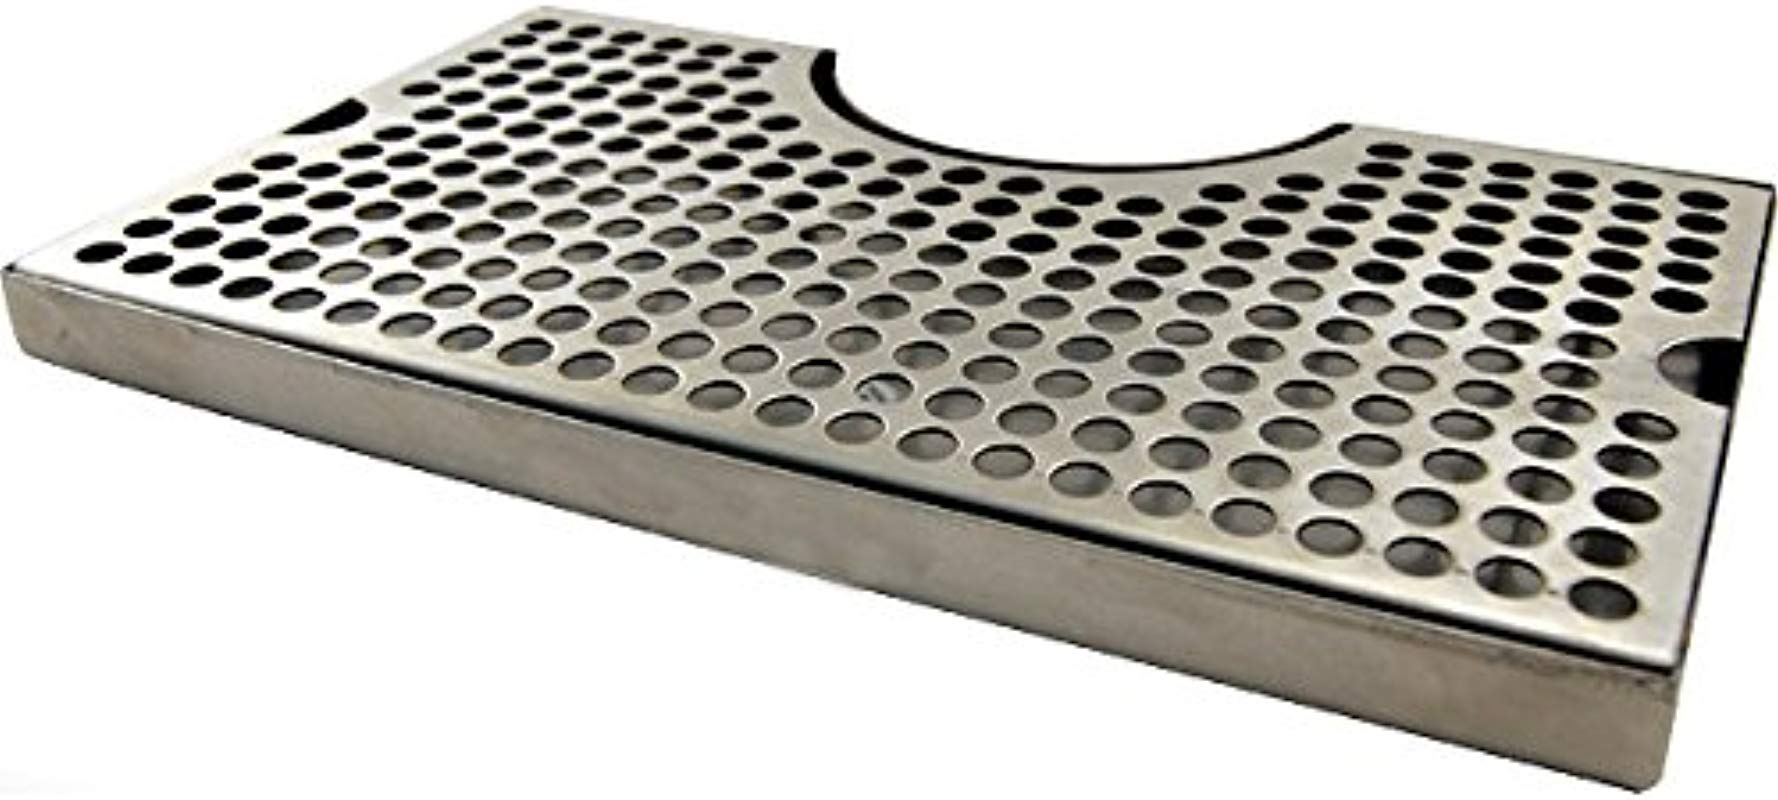 HomeBrewStuff 1 X 12 Surface Mount Kegerator Beer Drip Tray Stainless Steel Tower Cut Out No Drain